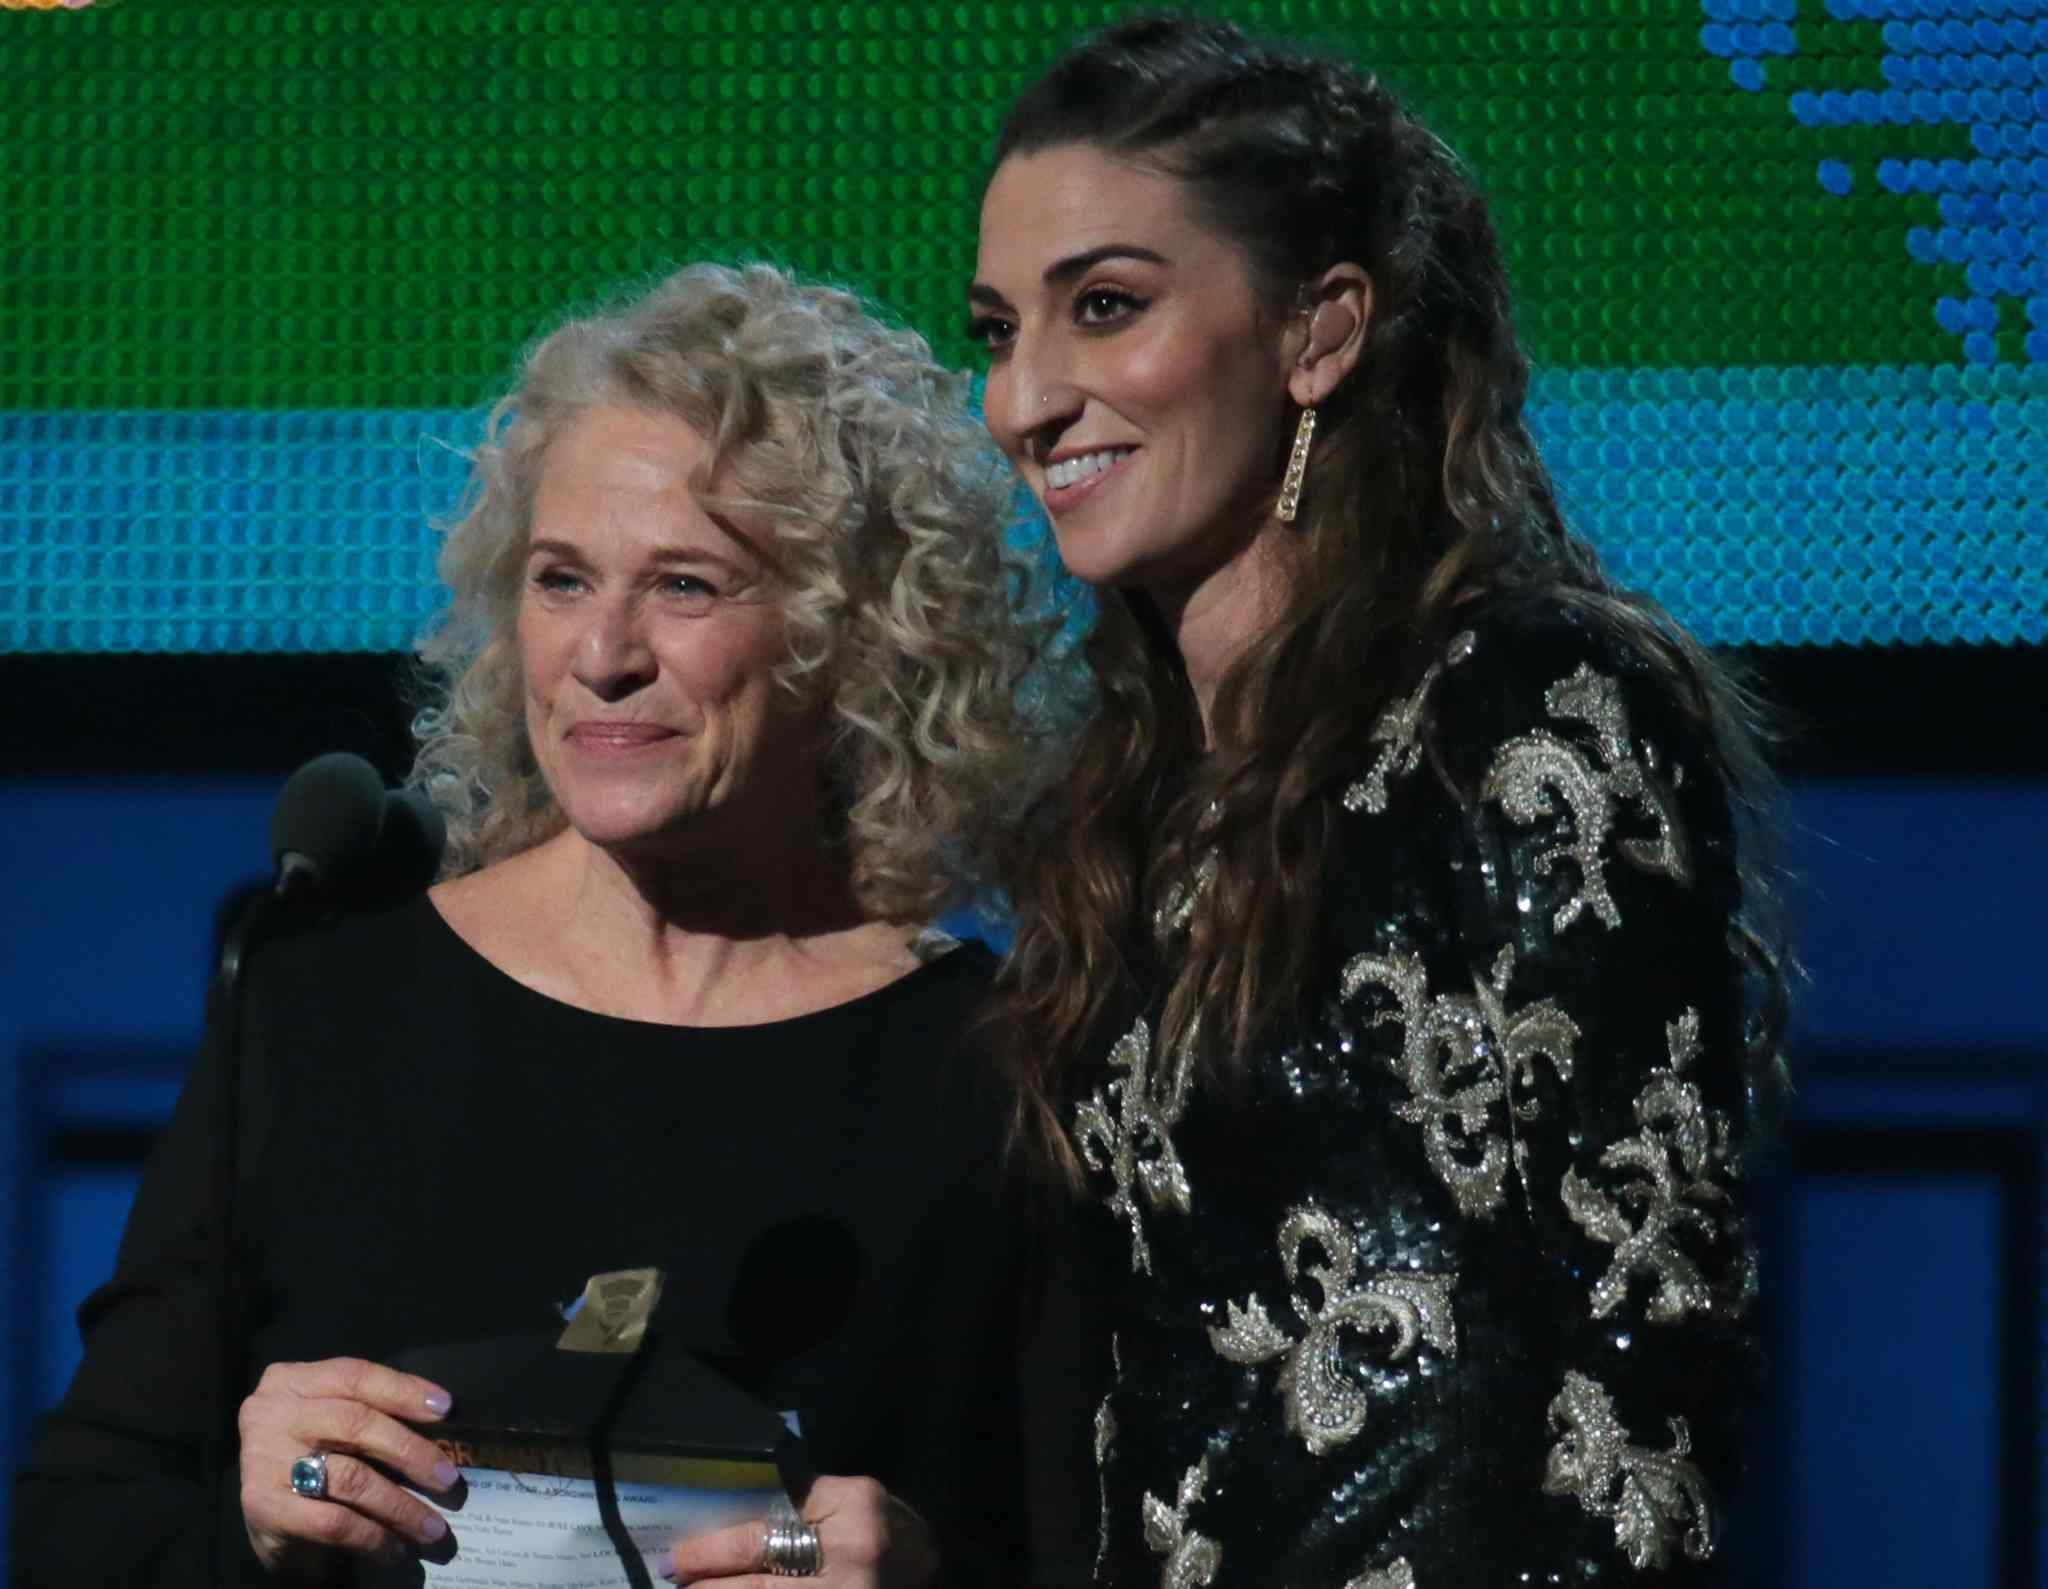 Carole King, left, and Sara Bareilles present the Song of the Year Grammy at the 56th Annual Grammy Awards.